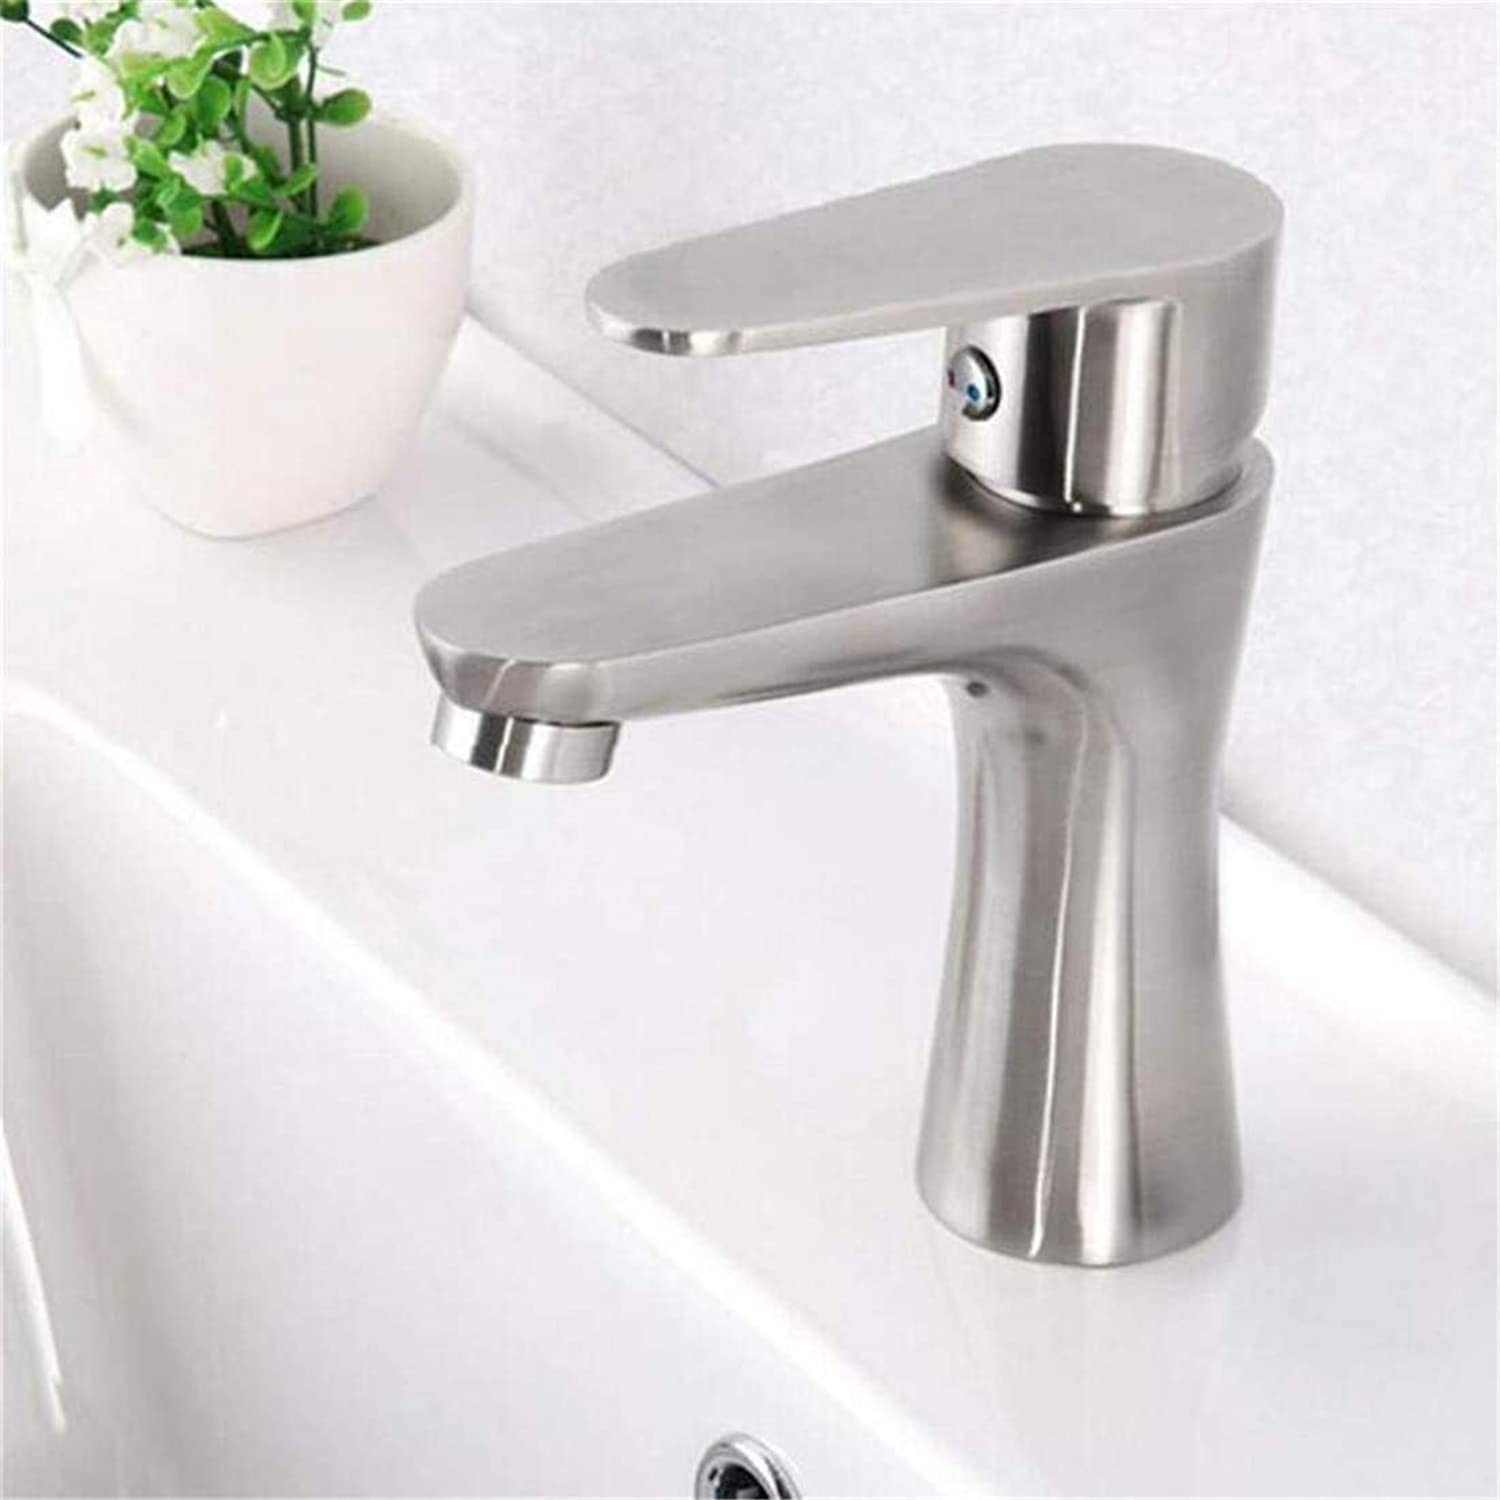 Retro Hot and Cold Faucet Luxury Mixer Platingfaucets Basin Mixer Stainless Steel Single Hole Bathroom Basin Faucet Hot &Cold Water Tap